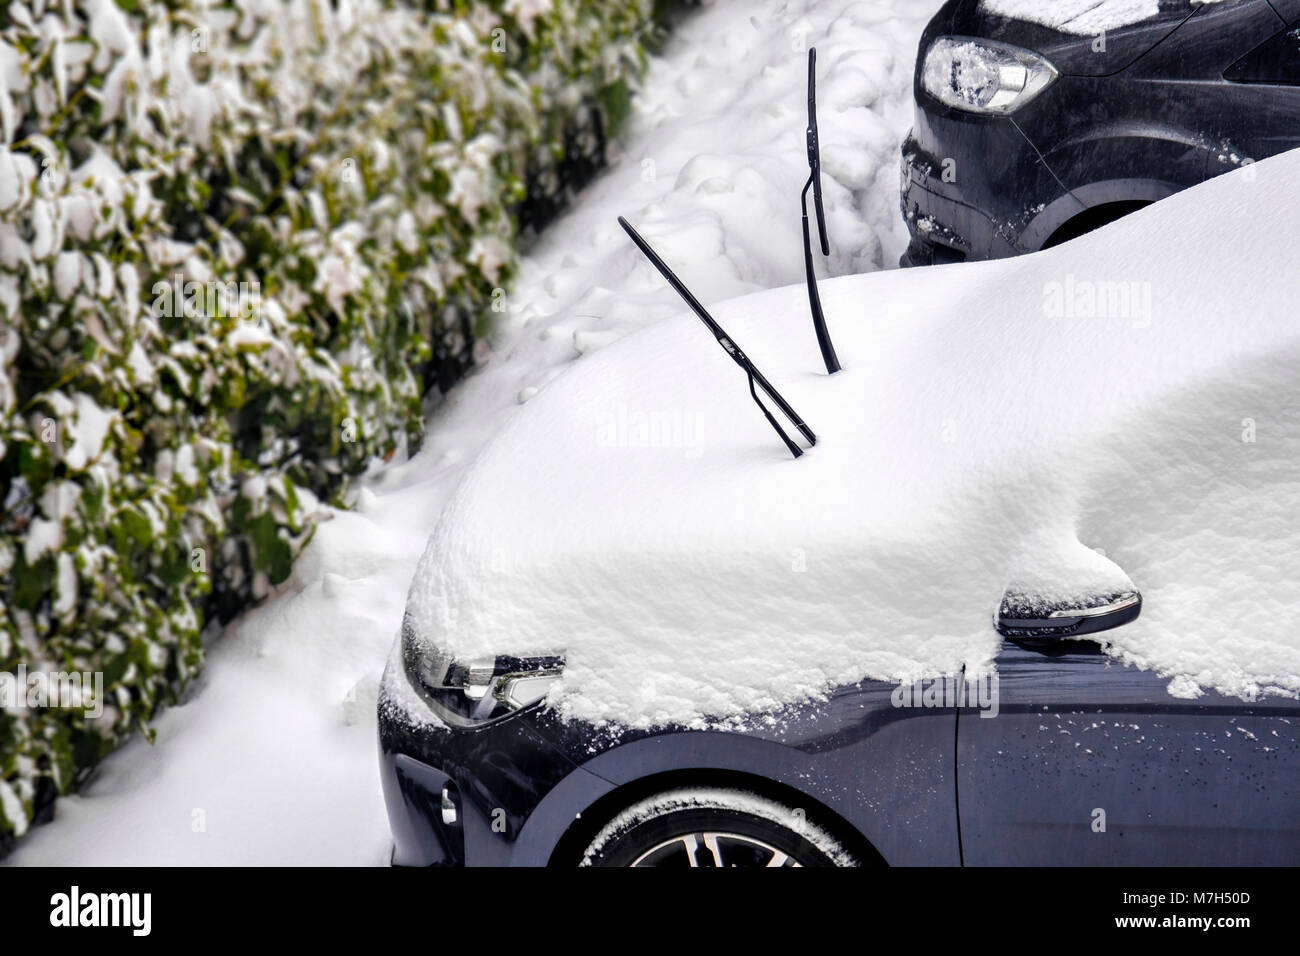 windscreen wiper snow prevent scraping windshield wipers - Stock Image